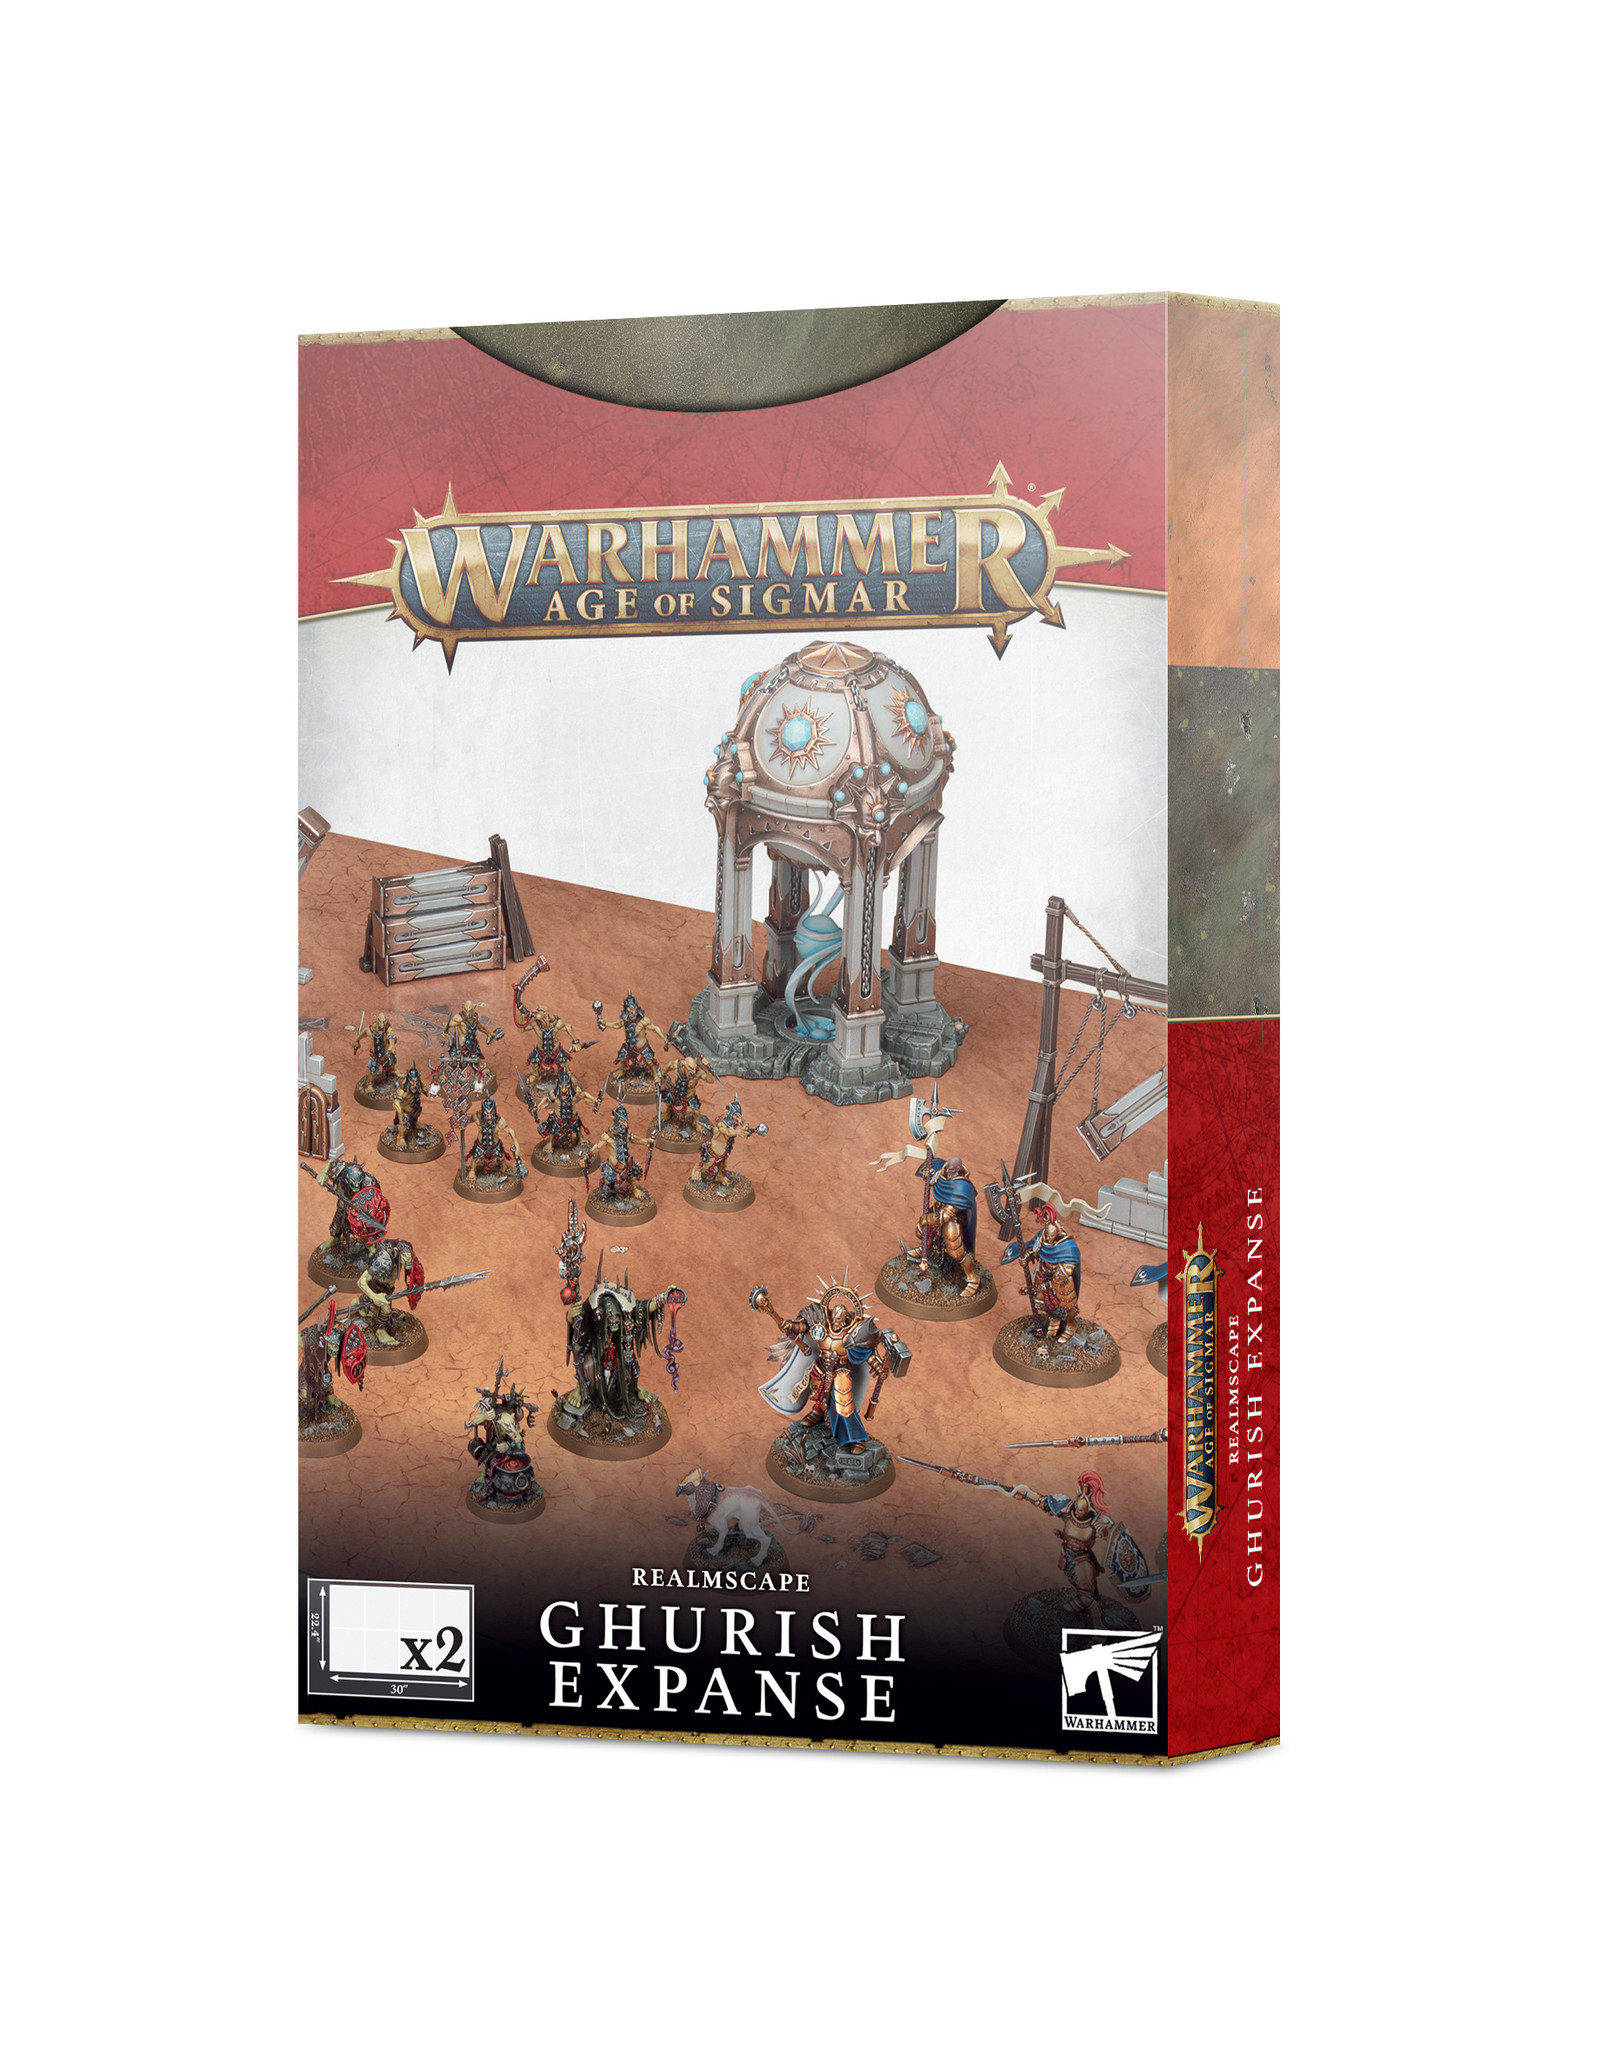 Age of Sigmar Age Of Sigmar Realmscape: Ghurish Expanse